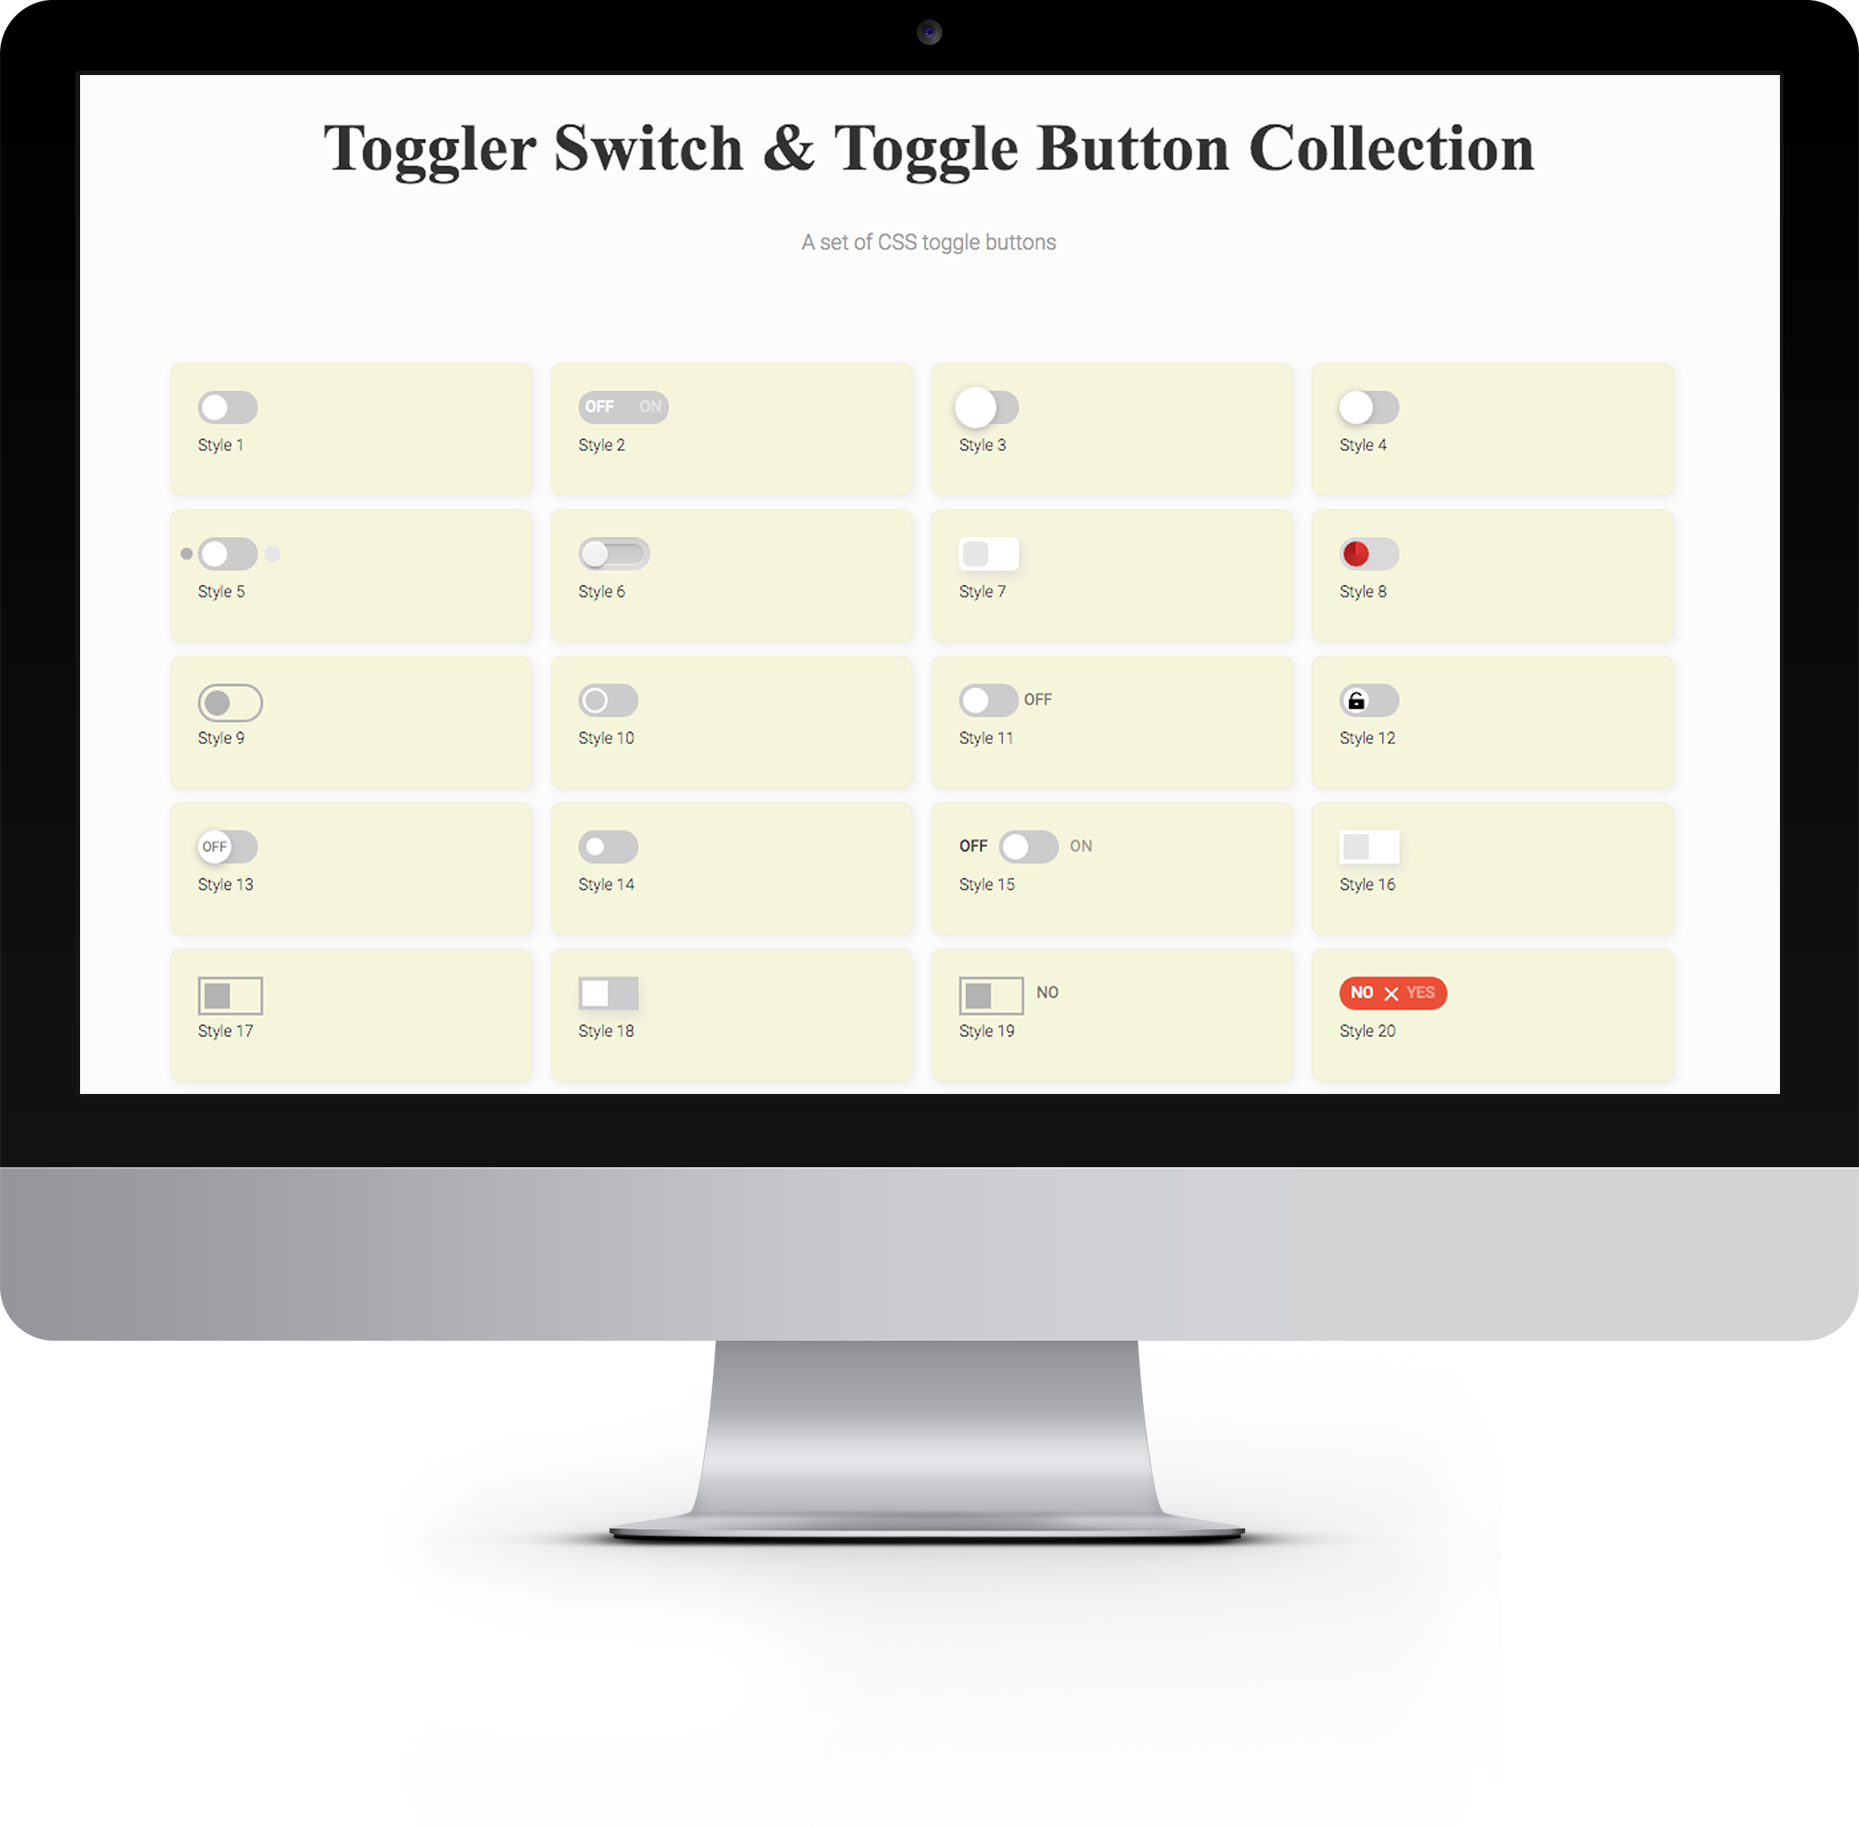 Toggler Toggle & Switch Buttons